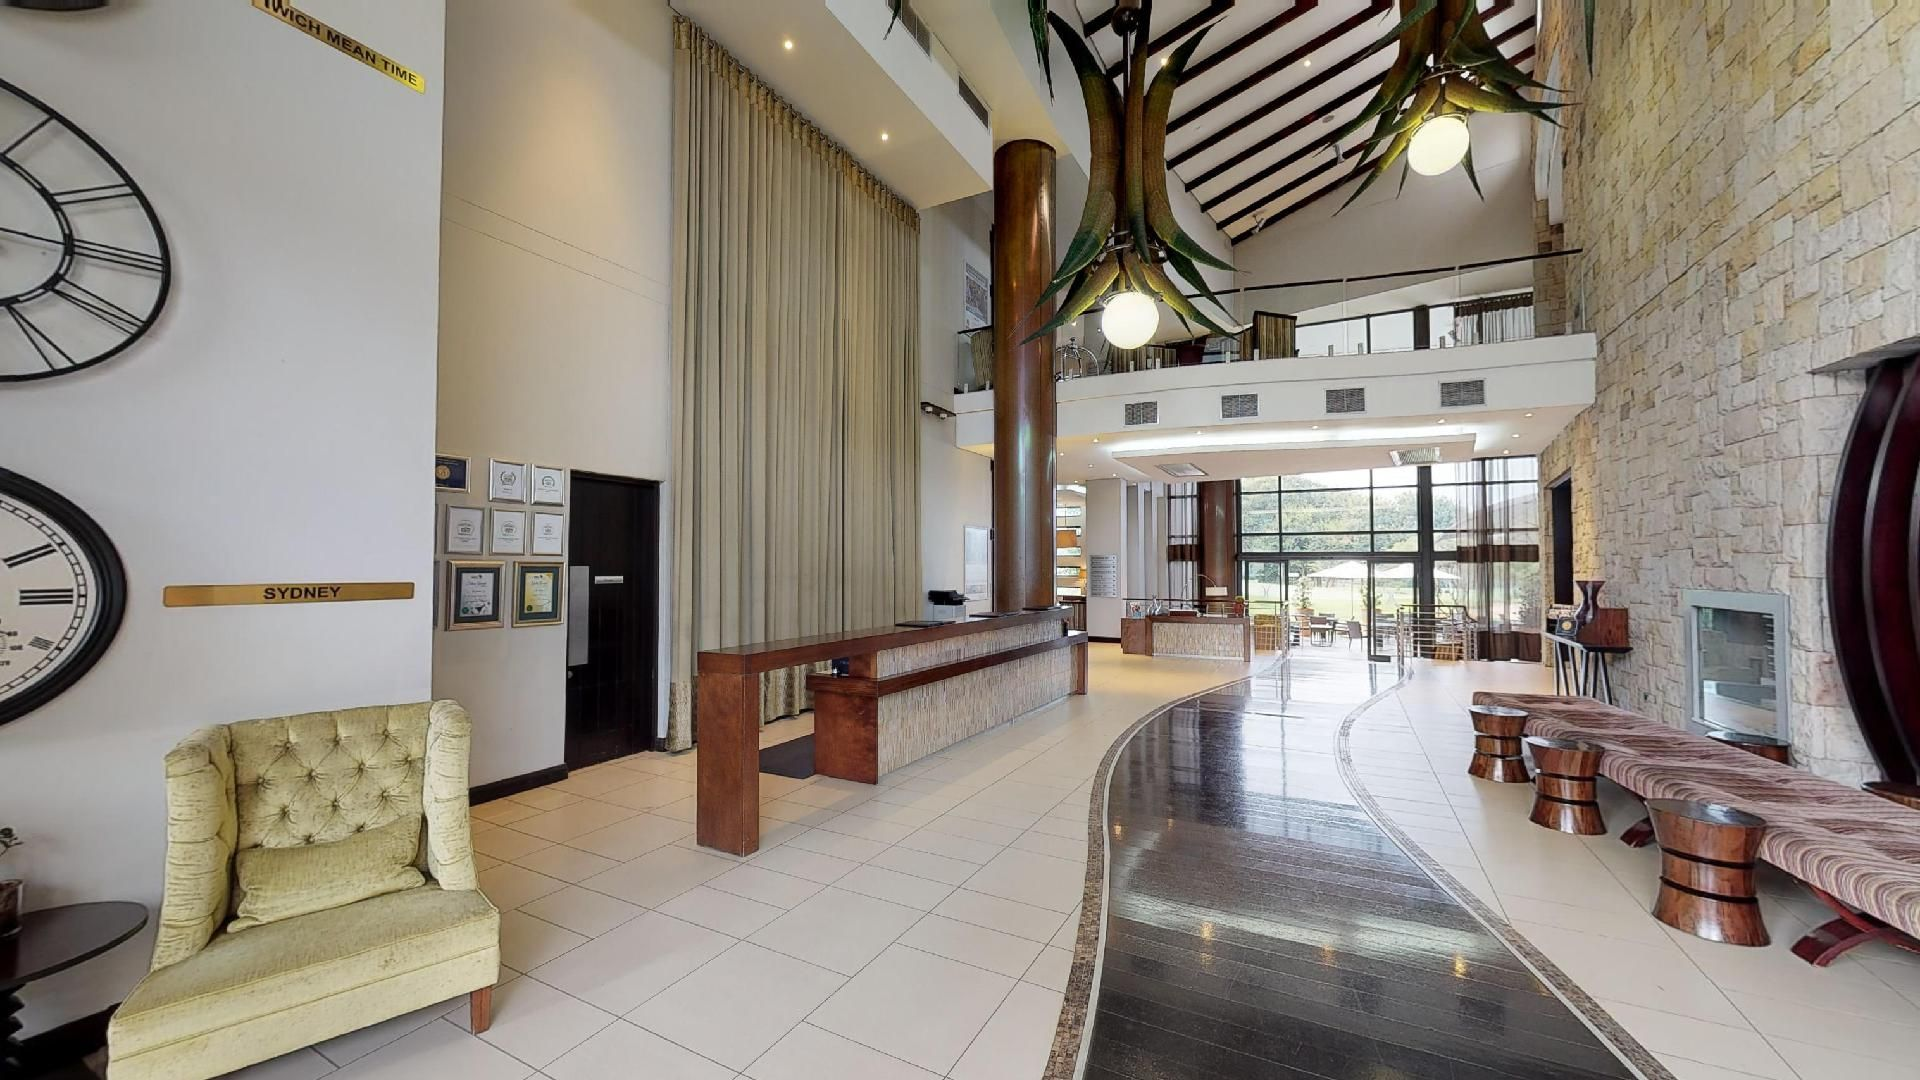 Entrance to the Fairway Hotel